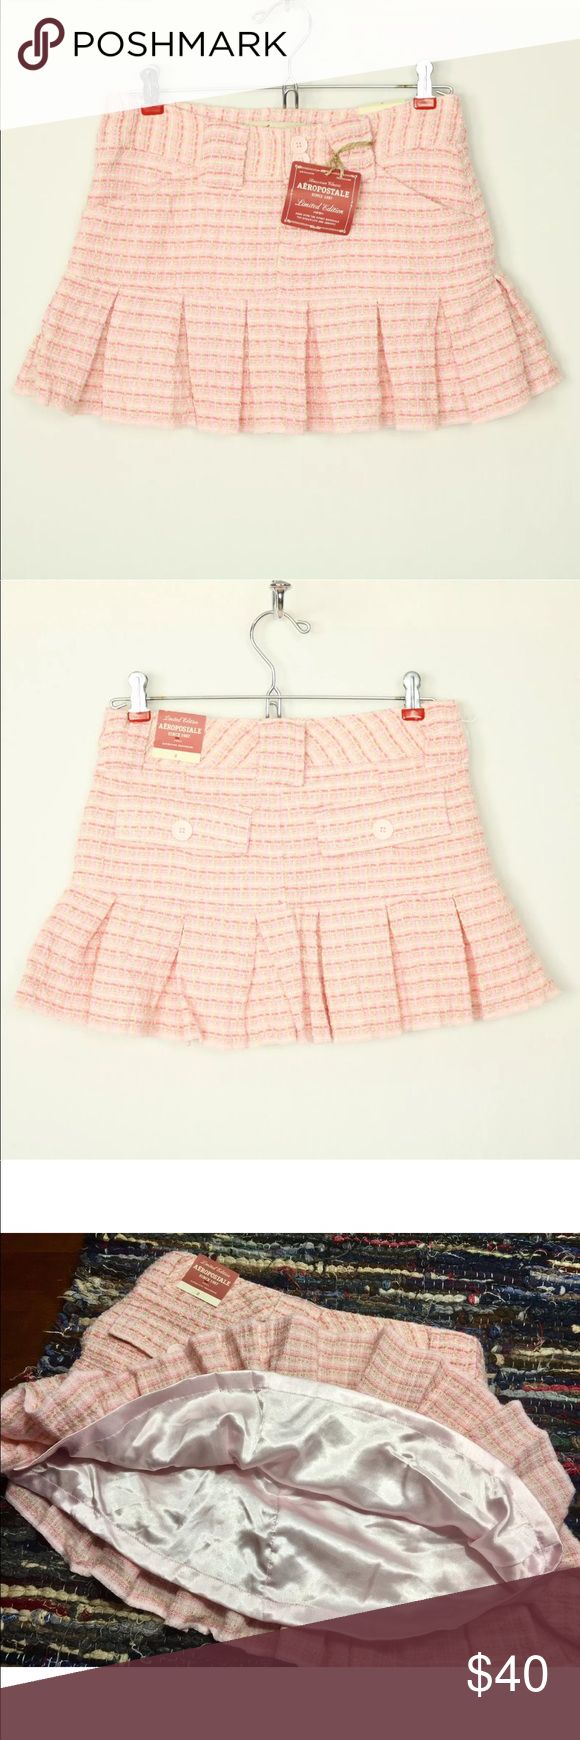 "Aeropostale Skirt Mini Limited Edition 0 Pink Aeropostale Skirt Mini Limited Edition Size 0 Pink White Tan Pleated  NEW WITH TAGS!! AEROPOSTALE LIMITED EDITION PLEATED MINI SKIRT SIZE:  0 COLOR:  PINK, WHITE, TAN Skirt is lined Front pockets Back button flap pockets Belt loops **SEE MEASUREMENTS BELOW**  APPROXIMATE MEASUREMENTS FLAT ACROSS:  WAIST (MEASURED ACROSS THE TOP EDGE):  13 1/2""  HIPS:  17""  WAIST TO BOTTOM:  12""  ITEM #359-I Aeropostale Skirts Mini"